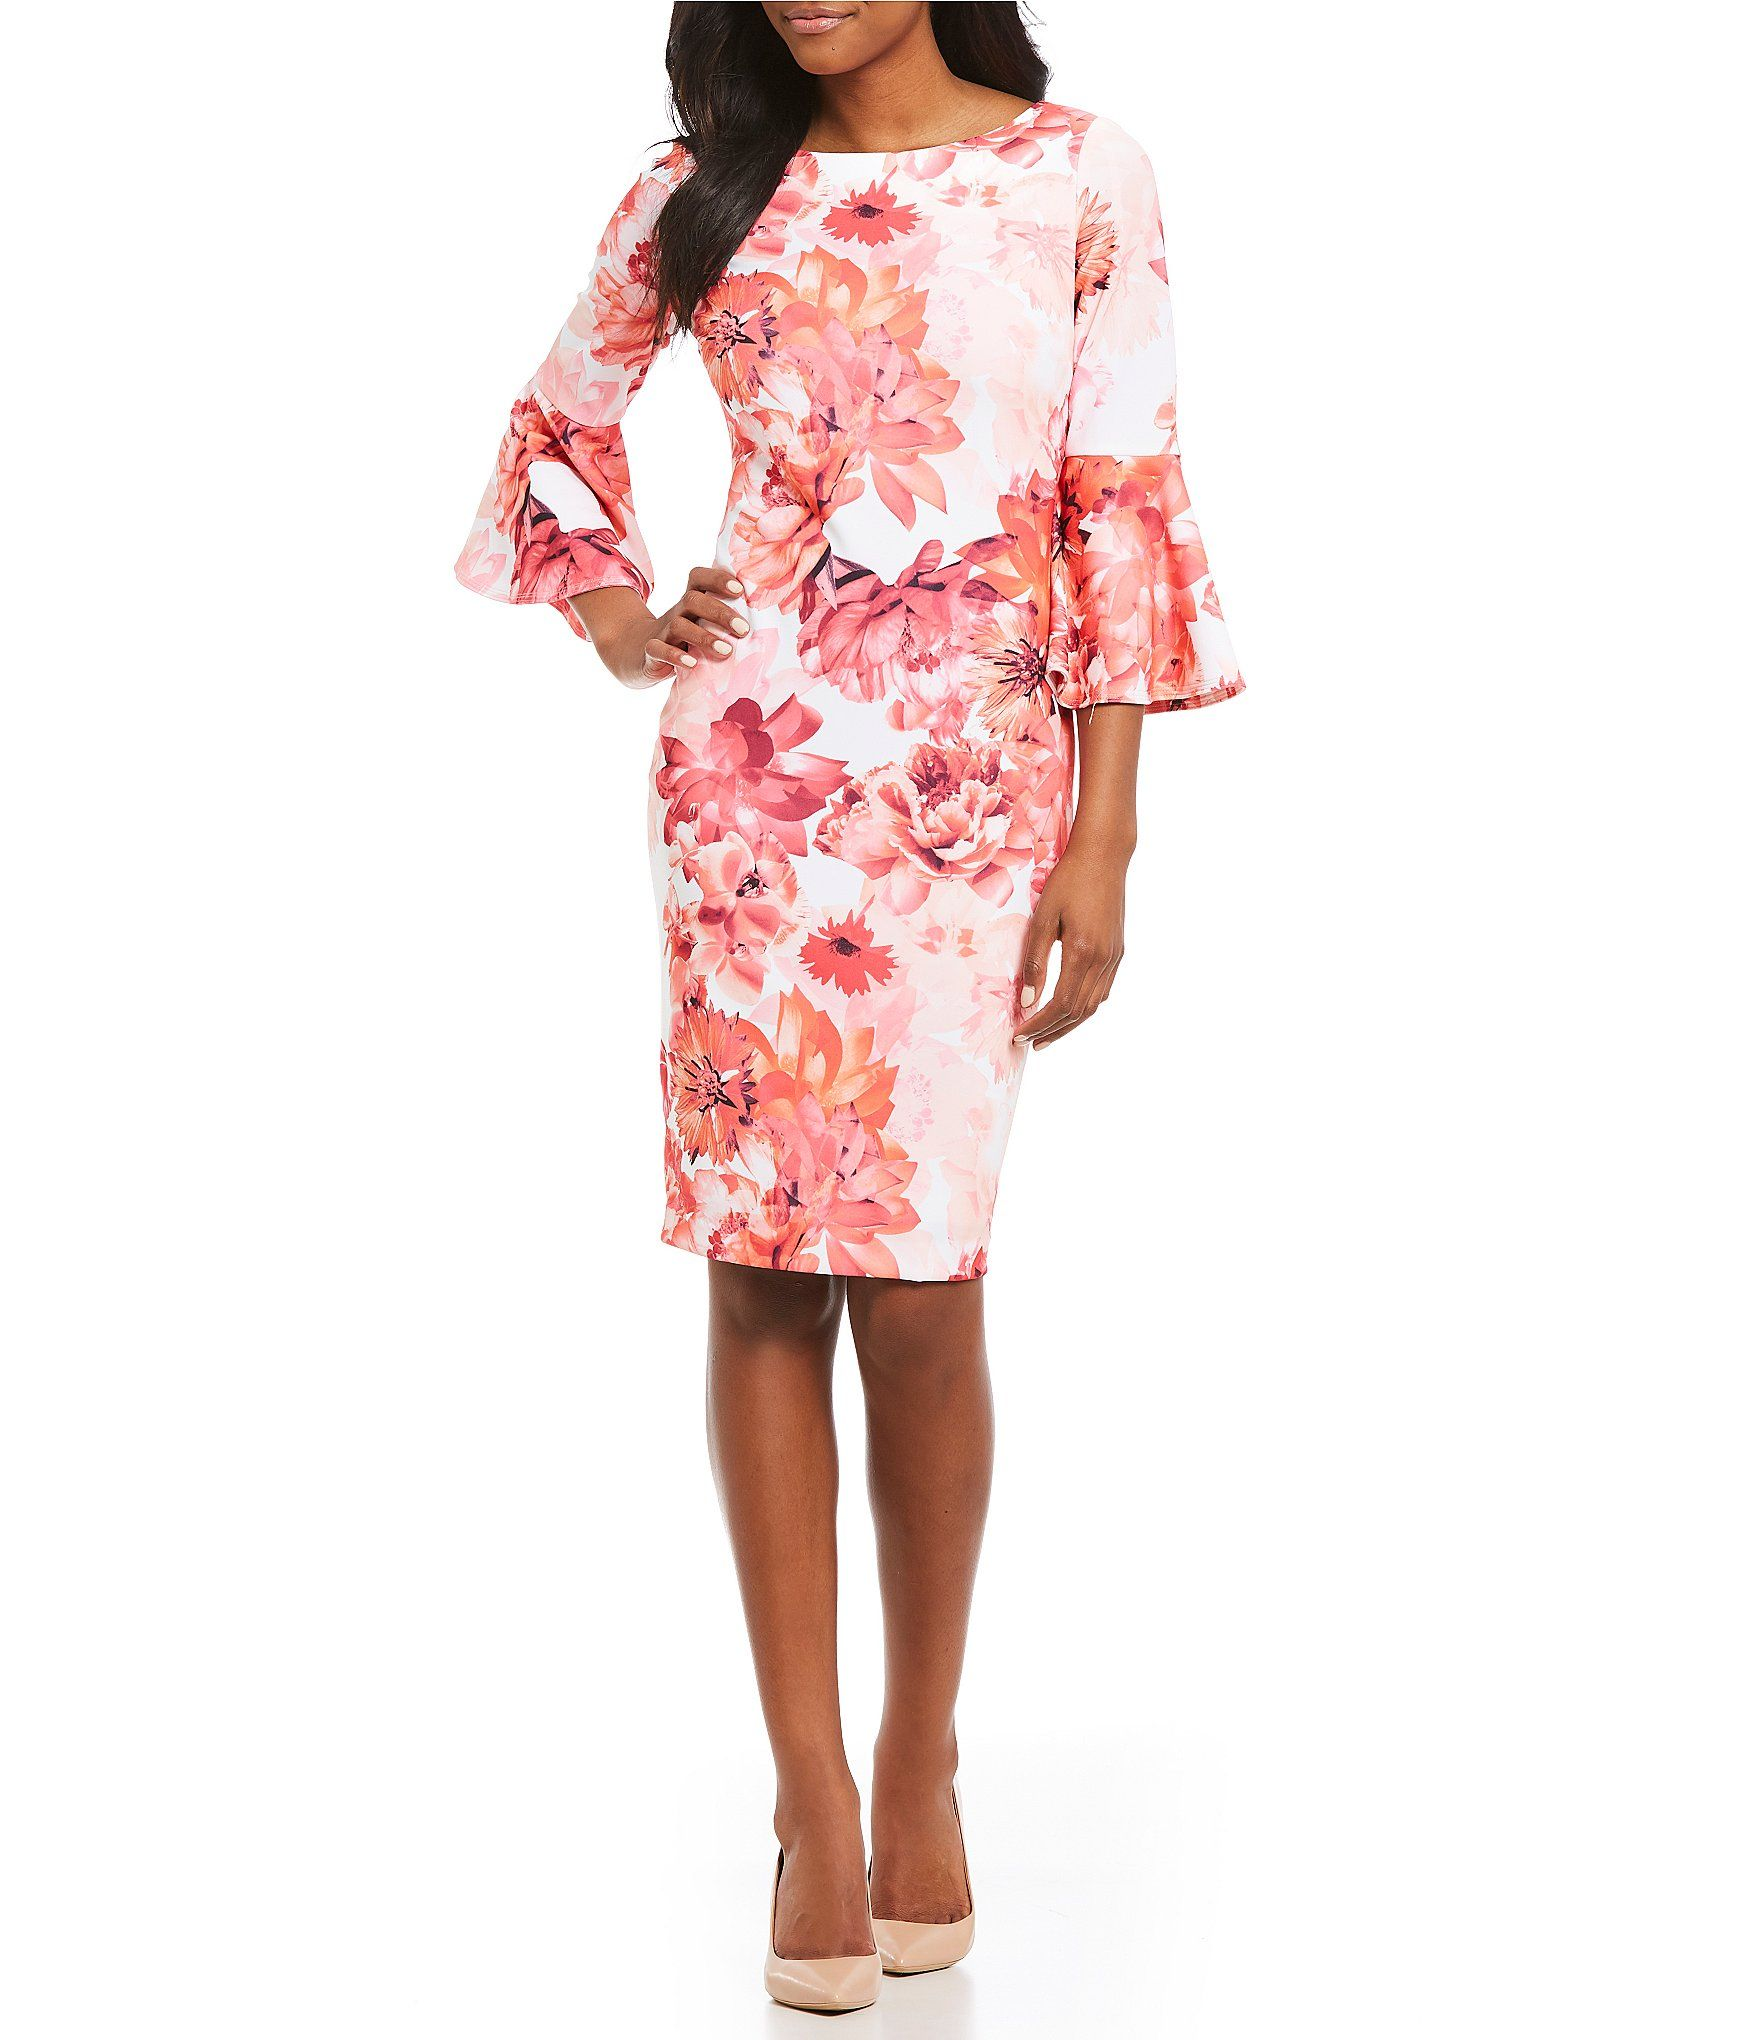 24b27750 Shop for Calvin Klein Scuba Crepe Floral Print Bell Sleeve Sheath Dress at  Dillards.com. Visit Dillards.com to find clothing, accessories, shoes, ...